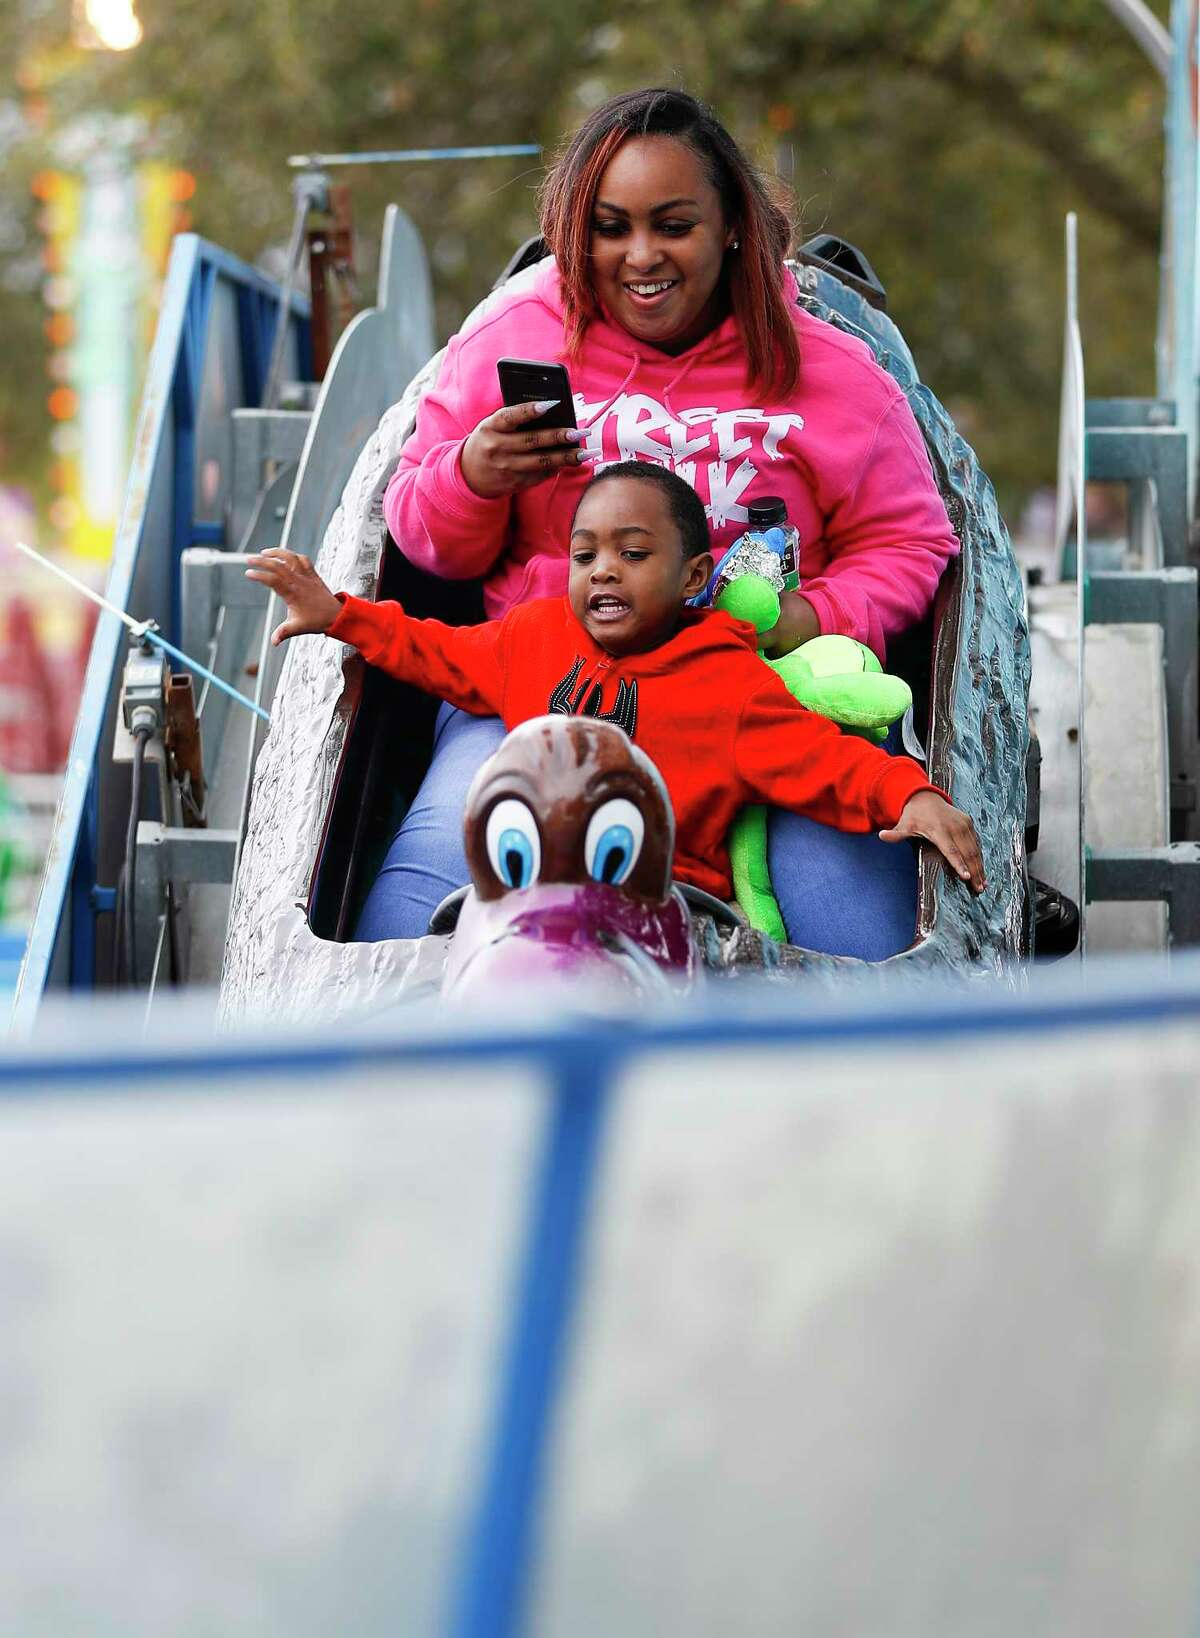 Kristian Barker takes photos of Majik Bishop, 3, as they rode the Pelican Spash in the kid's carnival area at the Houston Livestock Show and Rodeo at NRG Center, Thursday, March 7, 2019, in Houston.